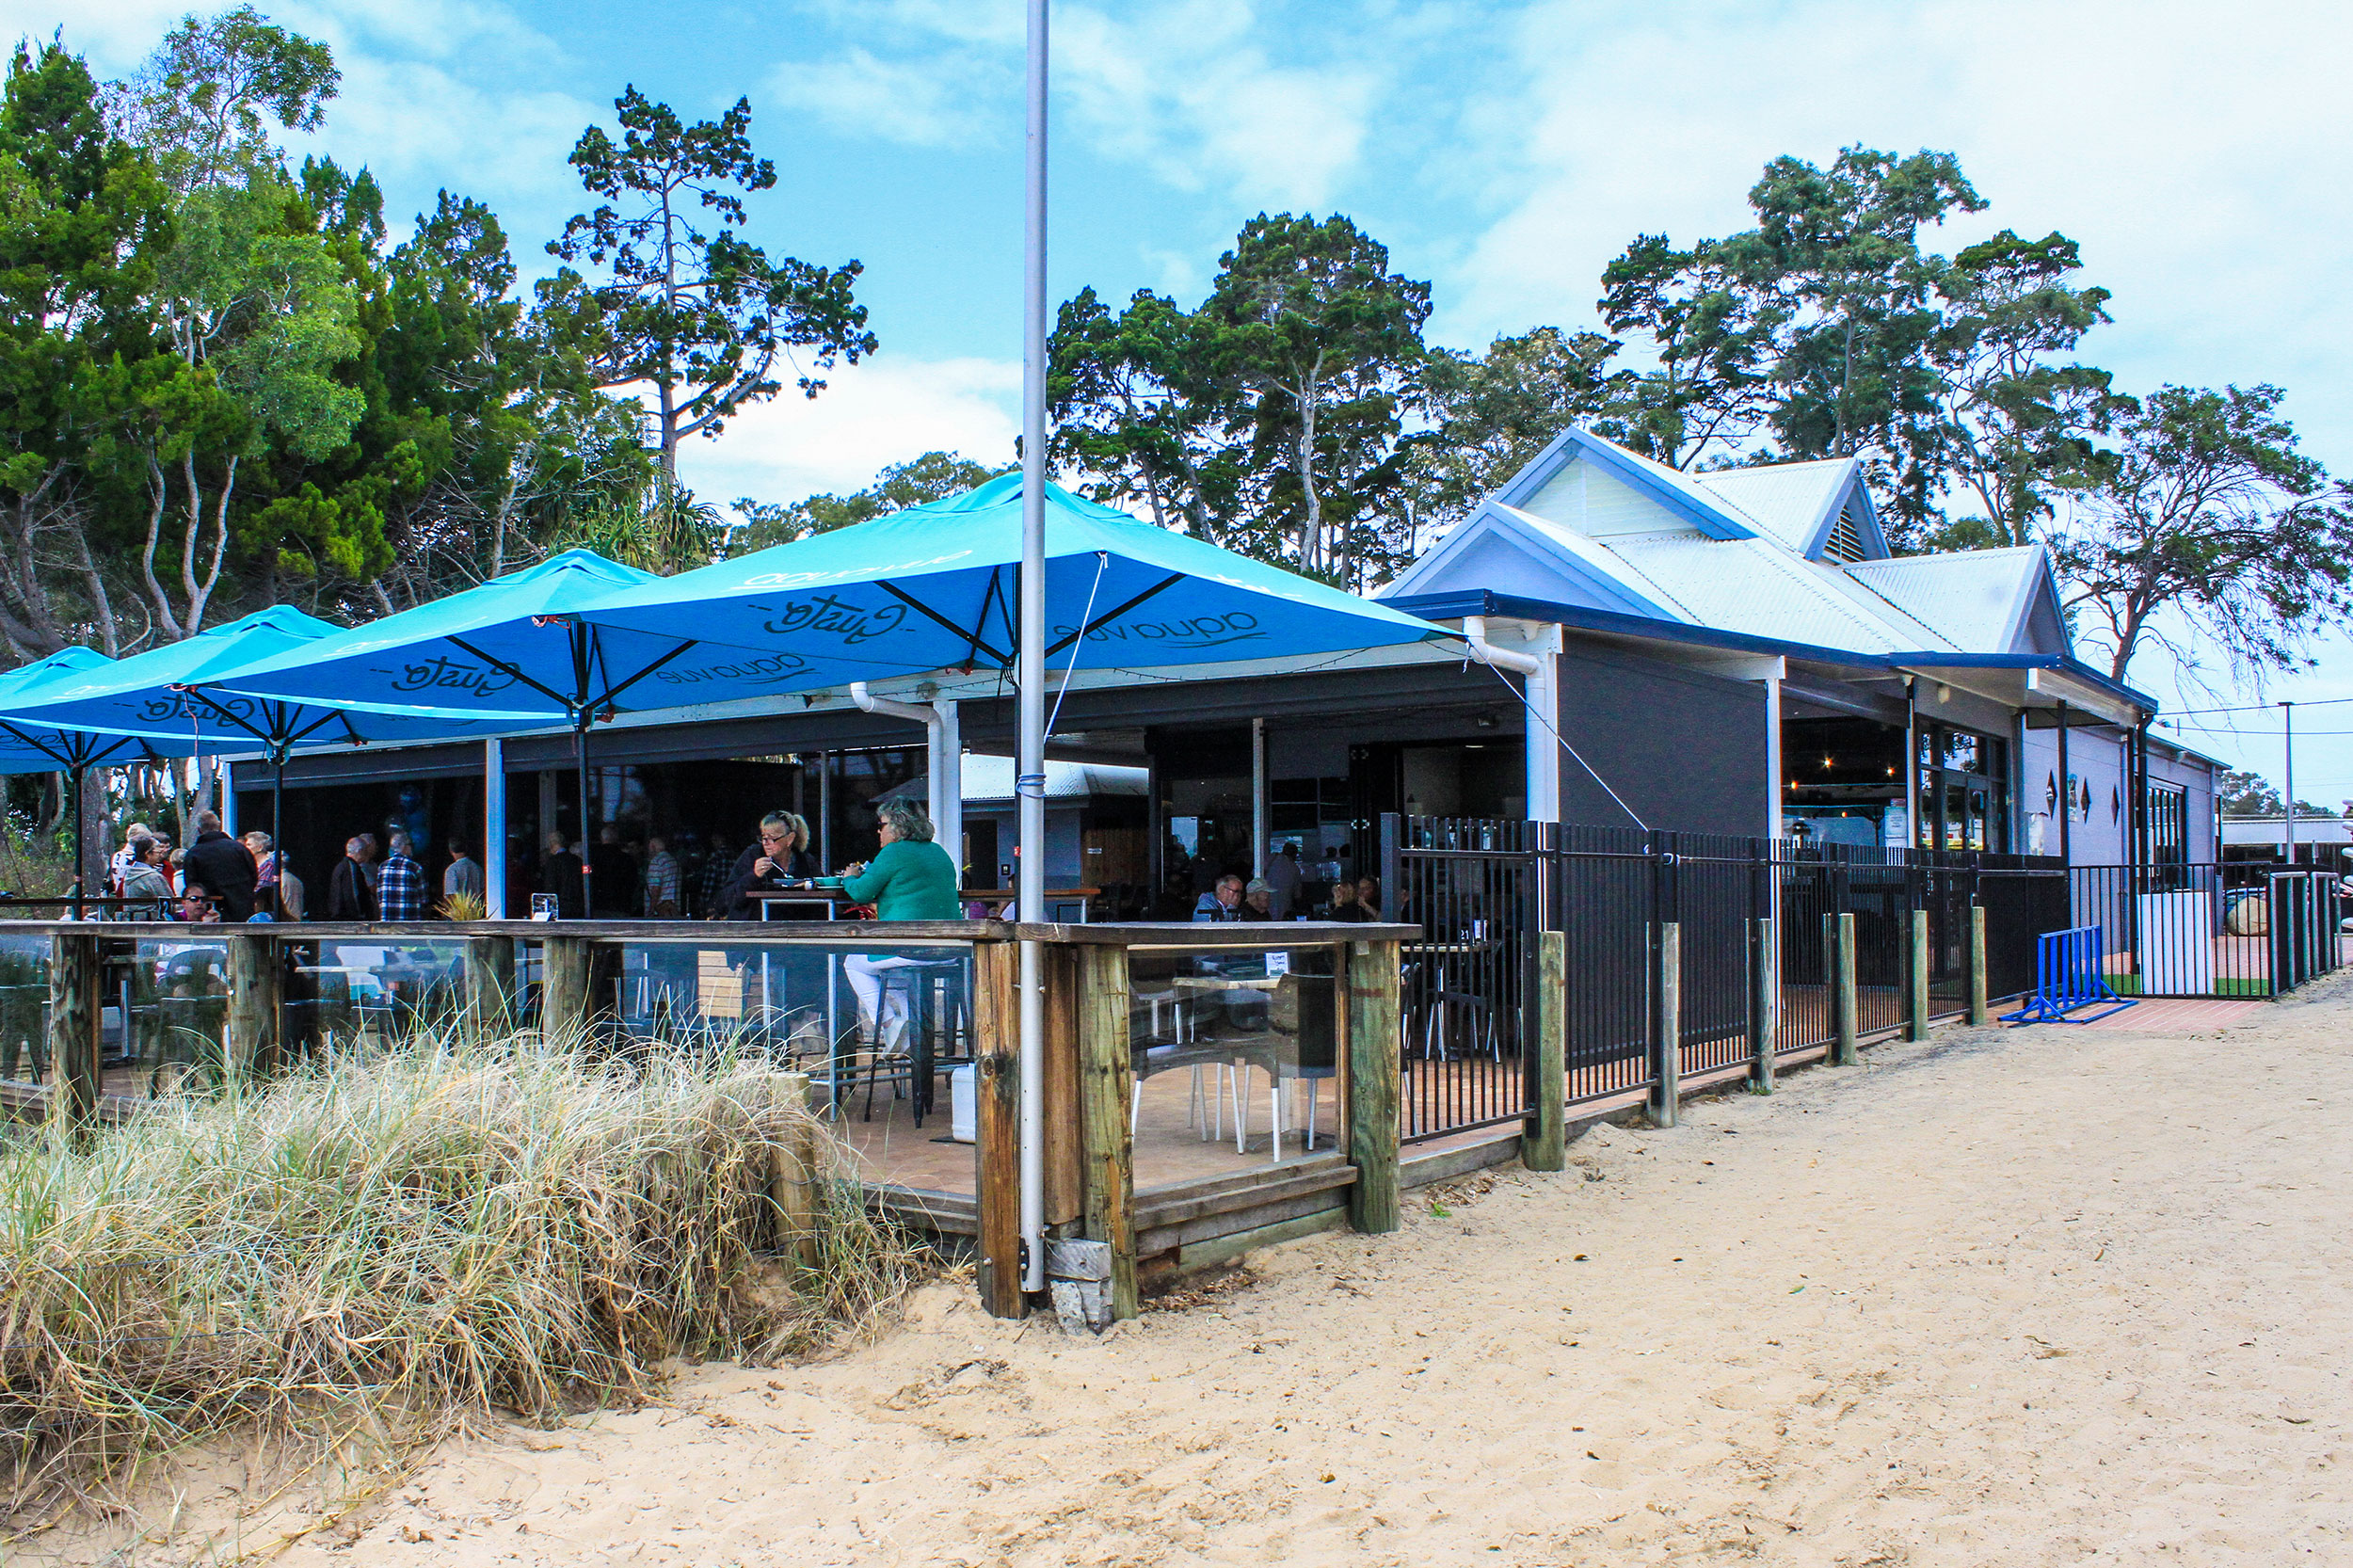 Name : Aquavue Cafe & Restaurant - Hervey Bay